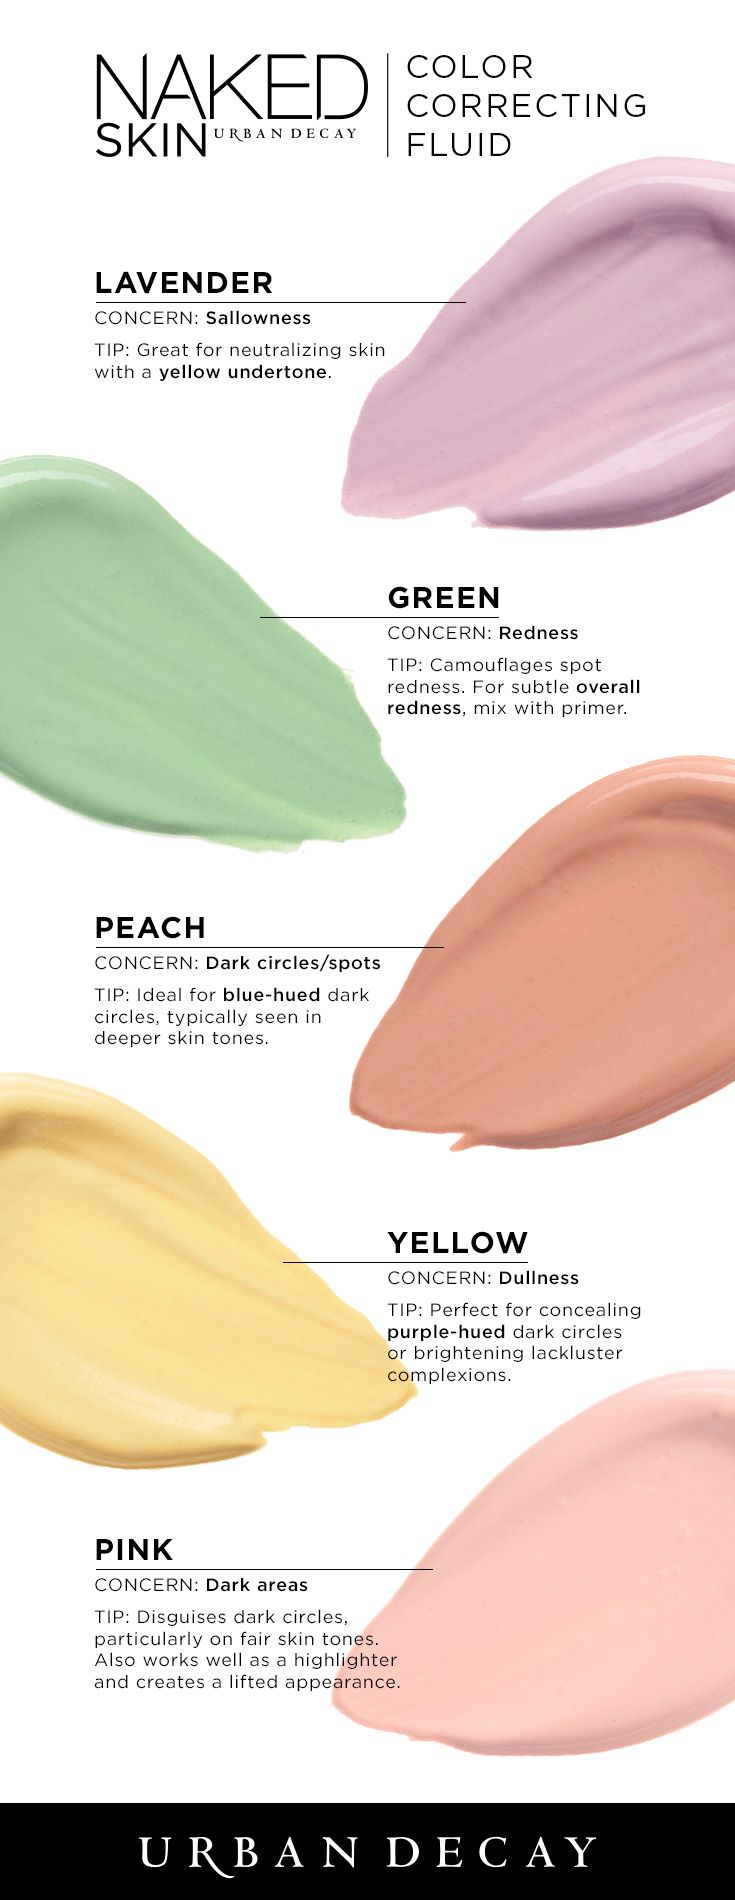 Makeup beauty and more jane cosmetics multi colored color correcting - Naked Skin Color Correcting Fluid